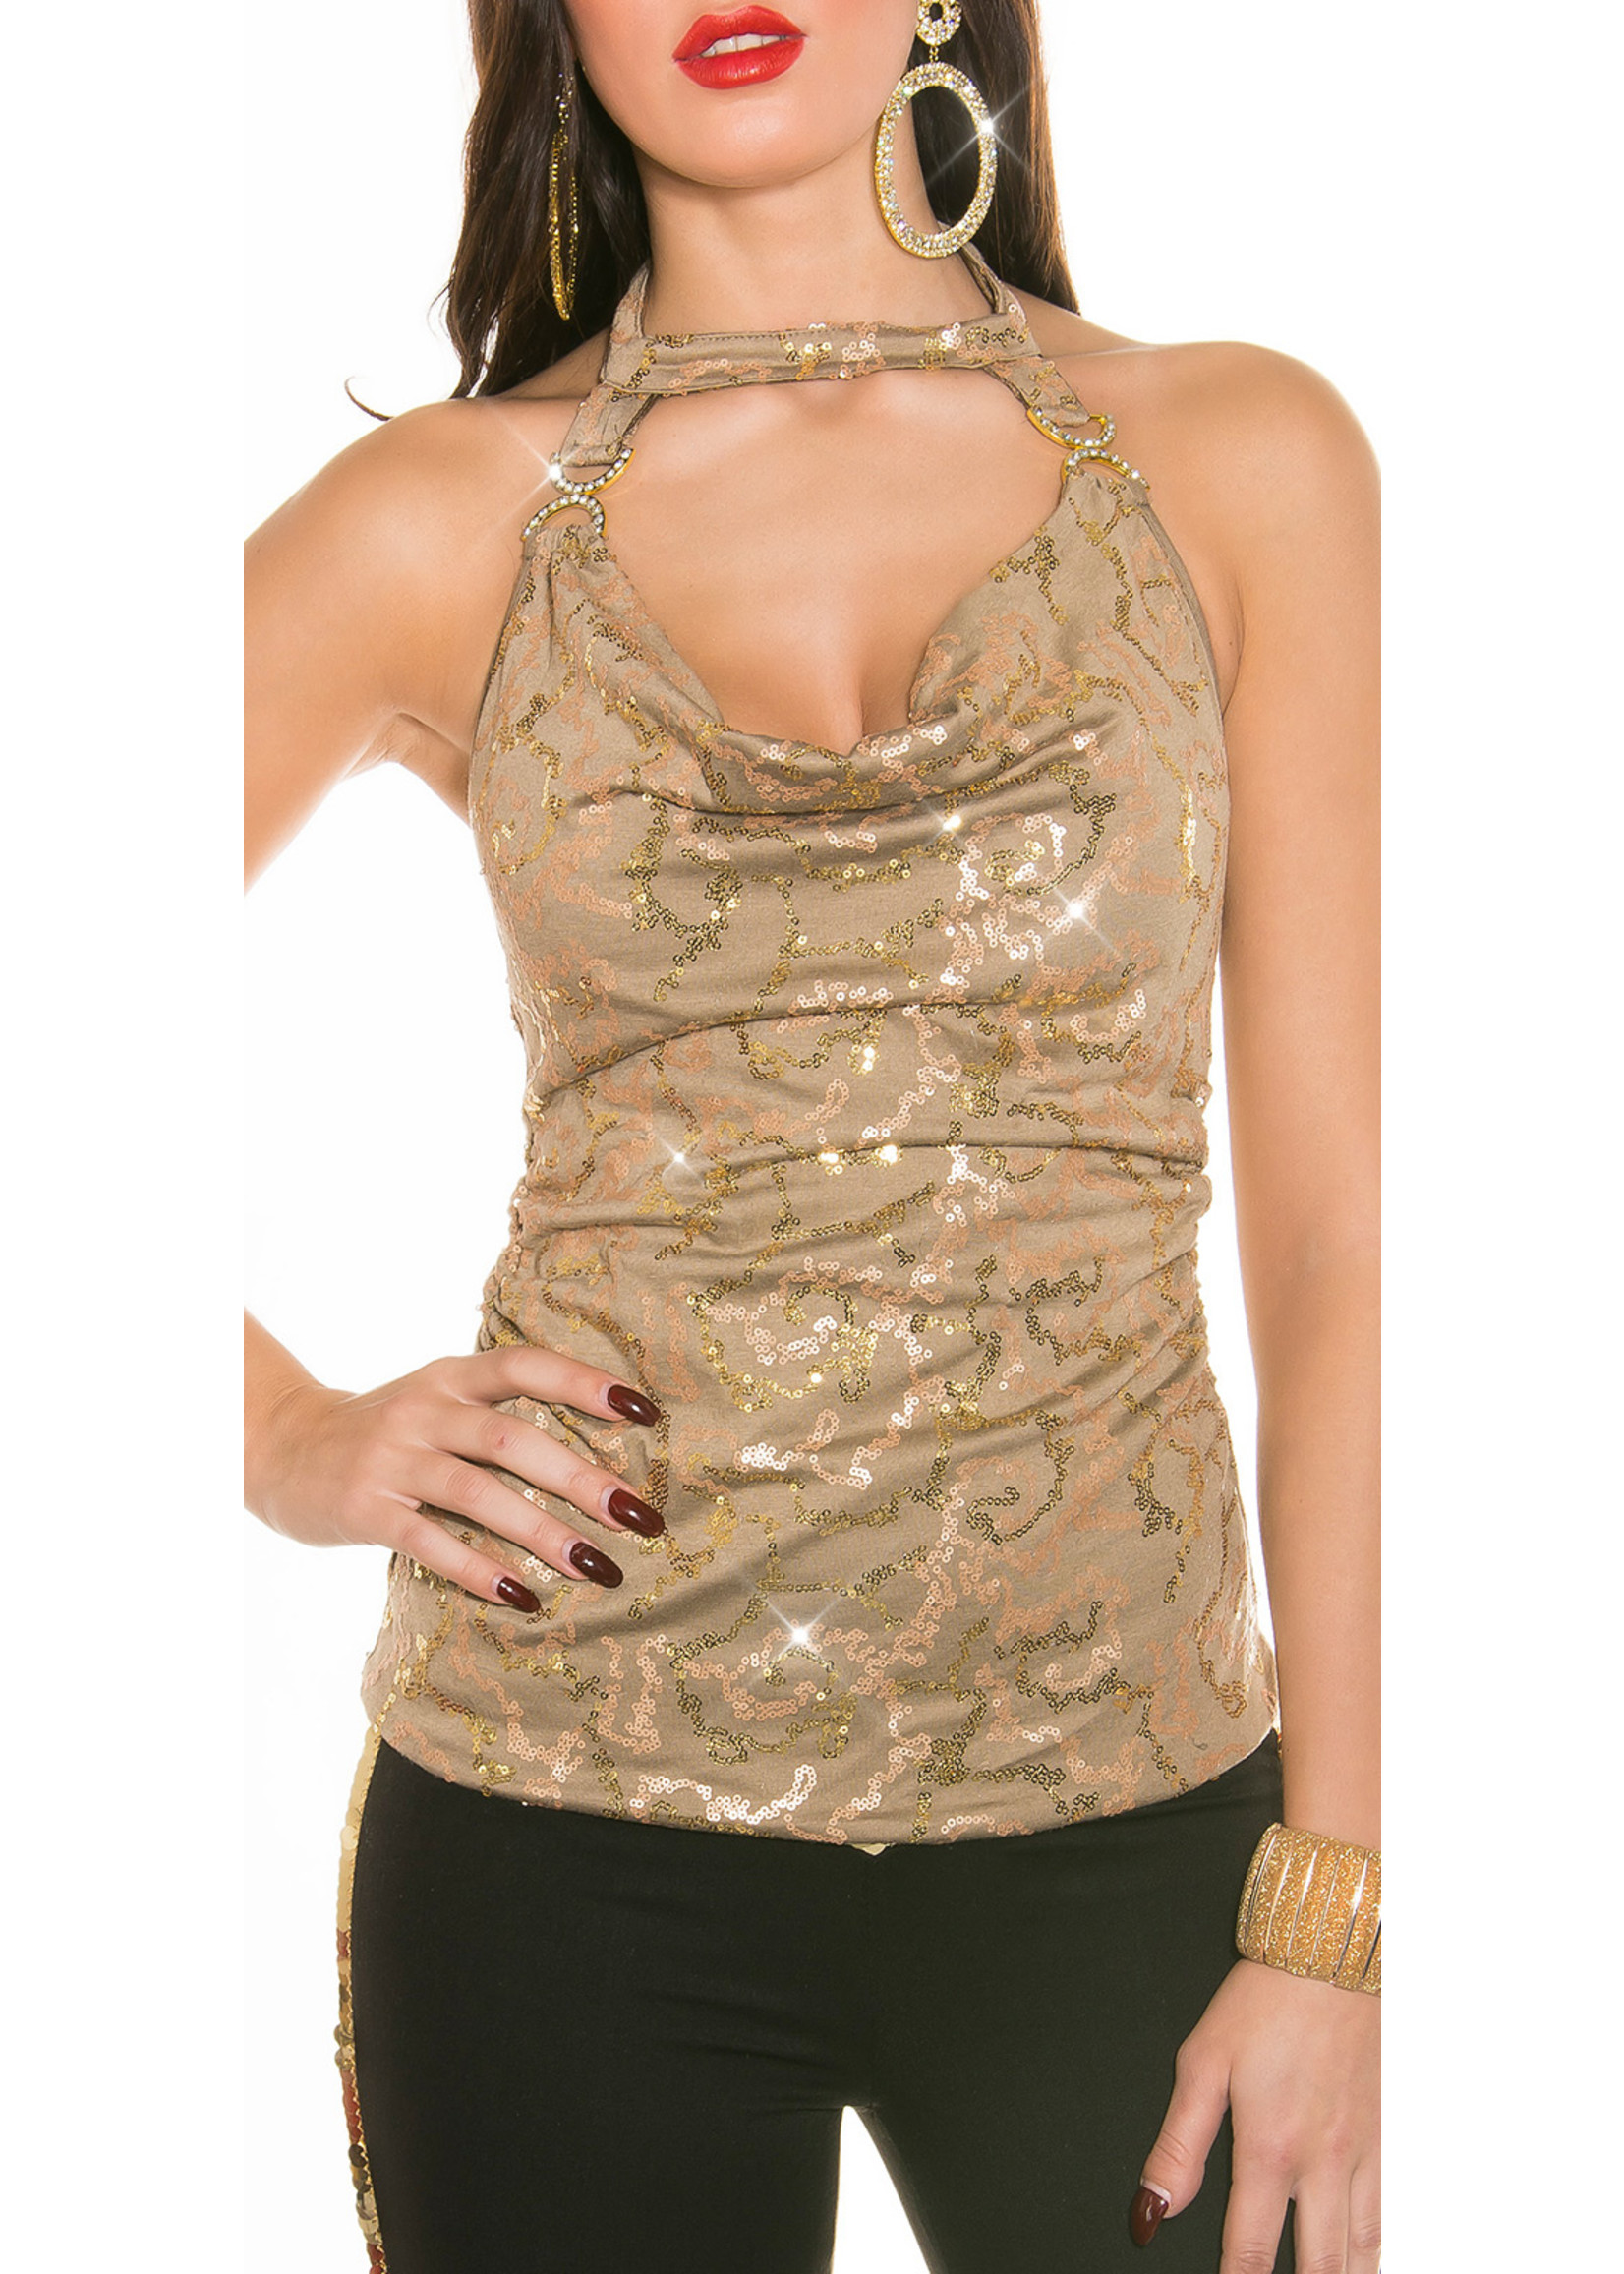 IN-STYLE FASHION CAPPUCCINO PARTY GLITTER TOP